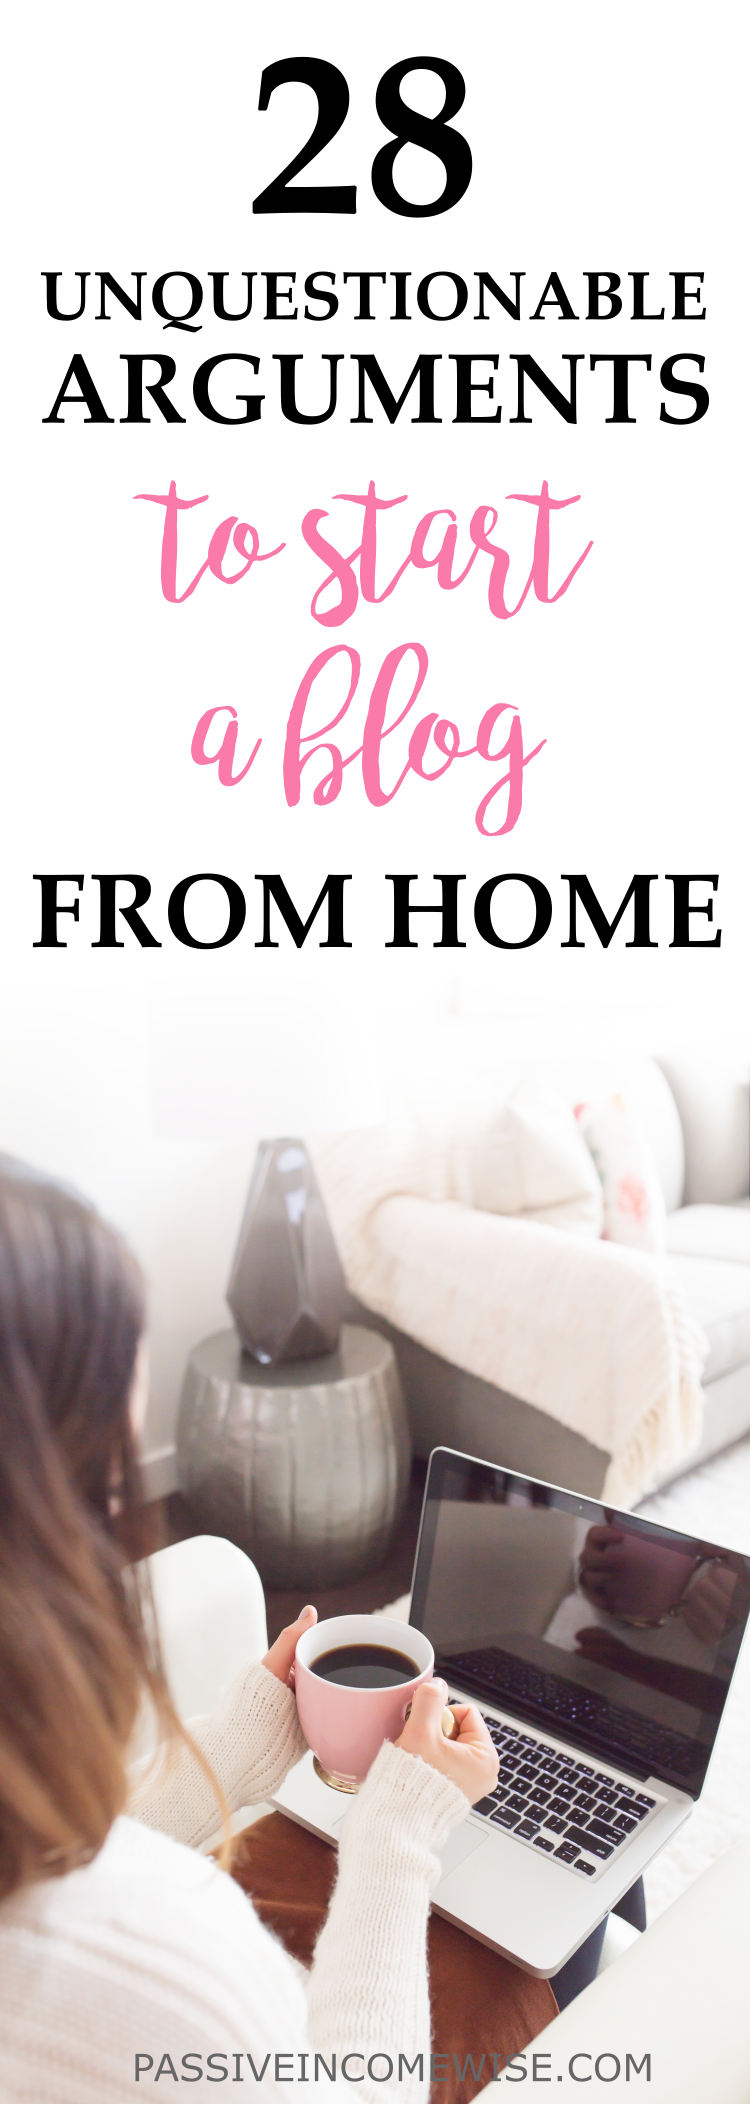 why to start a blog, blogging from home, get the best out of you, reach financial freedom